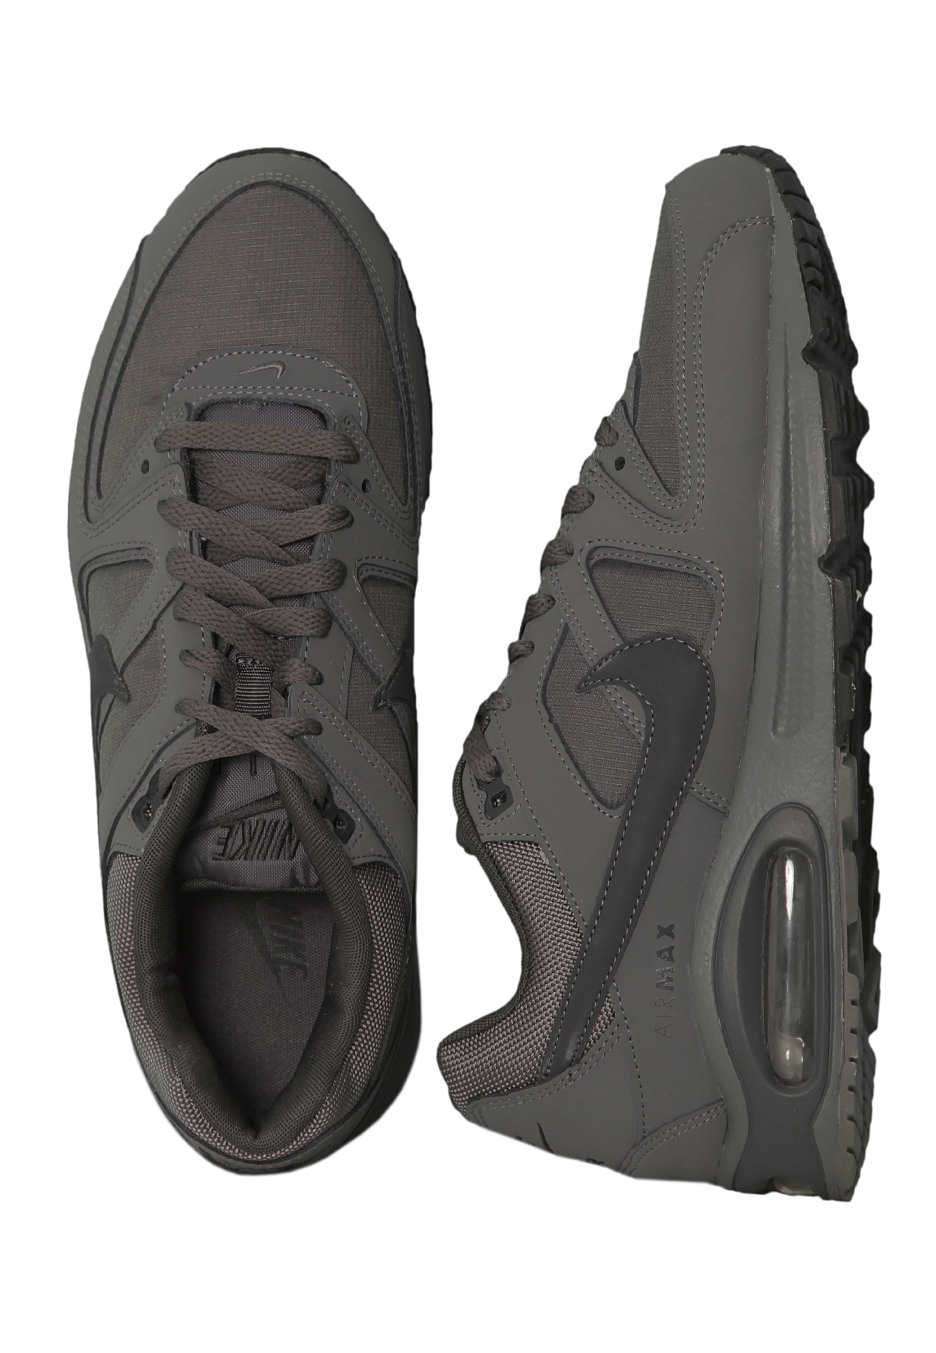 3032ee67d2cffc Nike - Air Max Command Dark Grey Anthracite Cool Grey - Shoes -  Impericon.com Worldwide